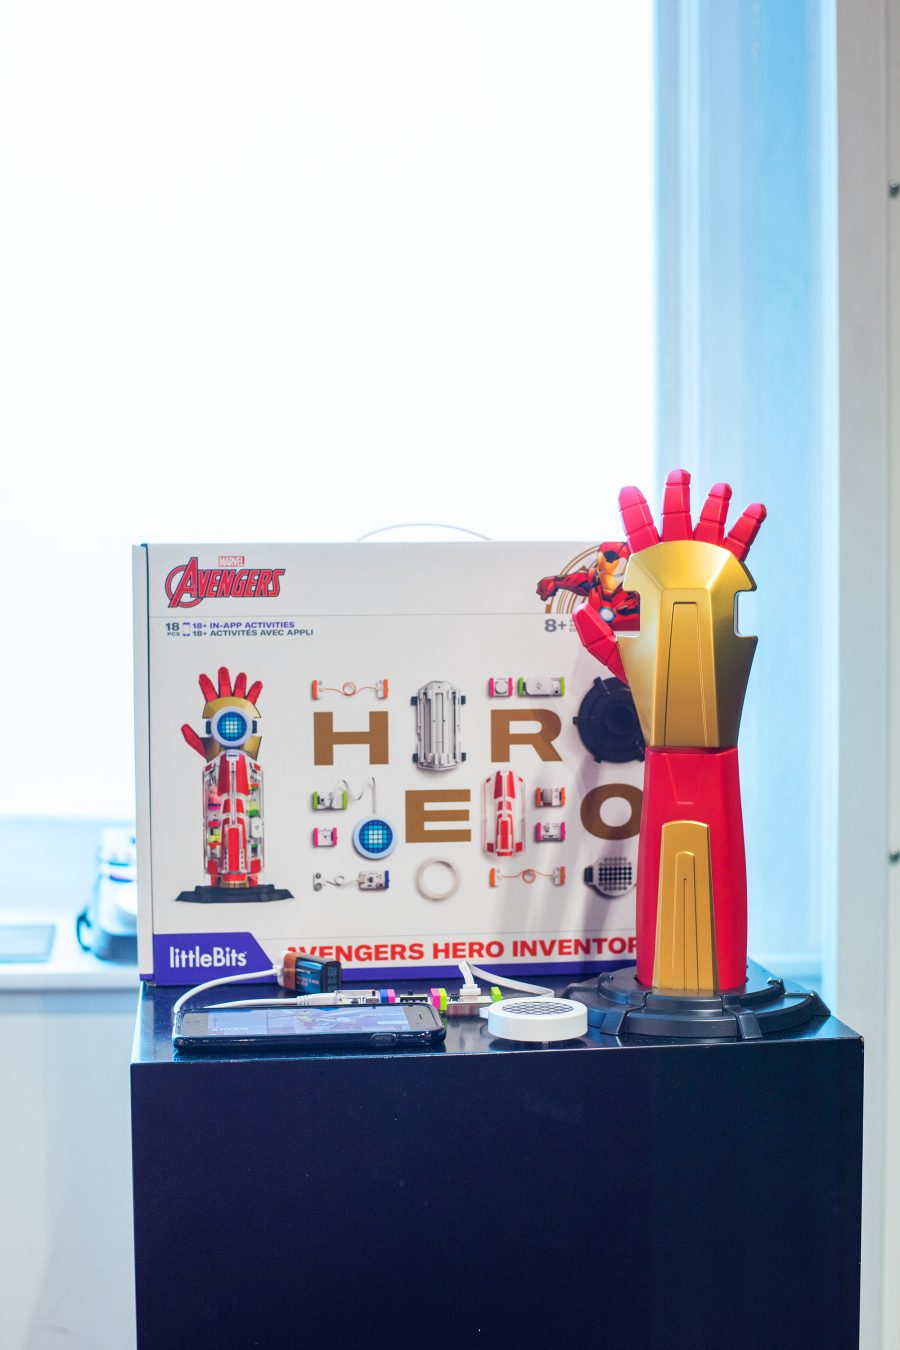 ShopDisneyUK Christmas Littlebits Avengers Hero Inventor